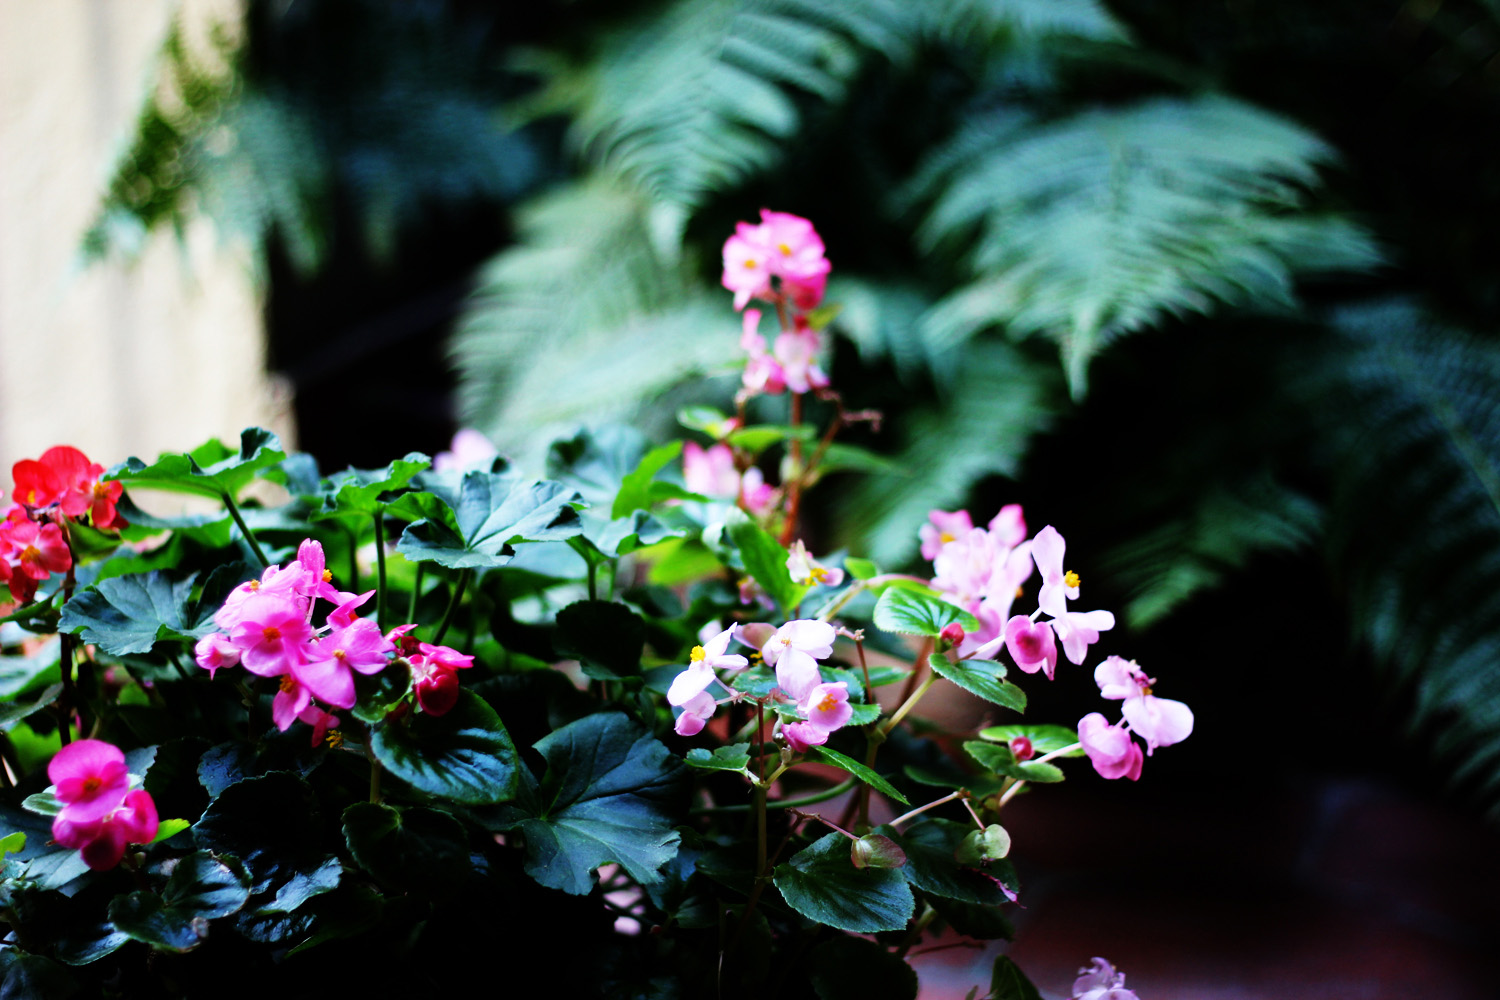 fatimayarie-pinkflowers-iammunich-patio-rainforest-munichblogger-img_6313